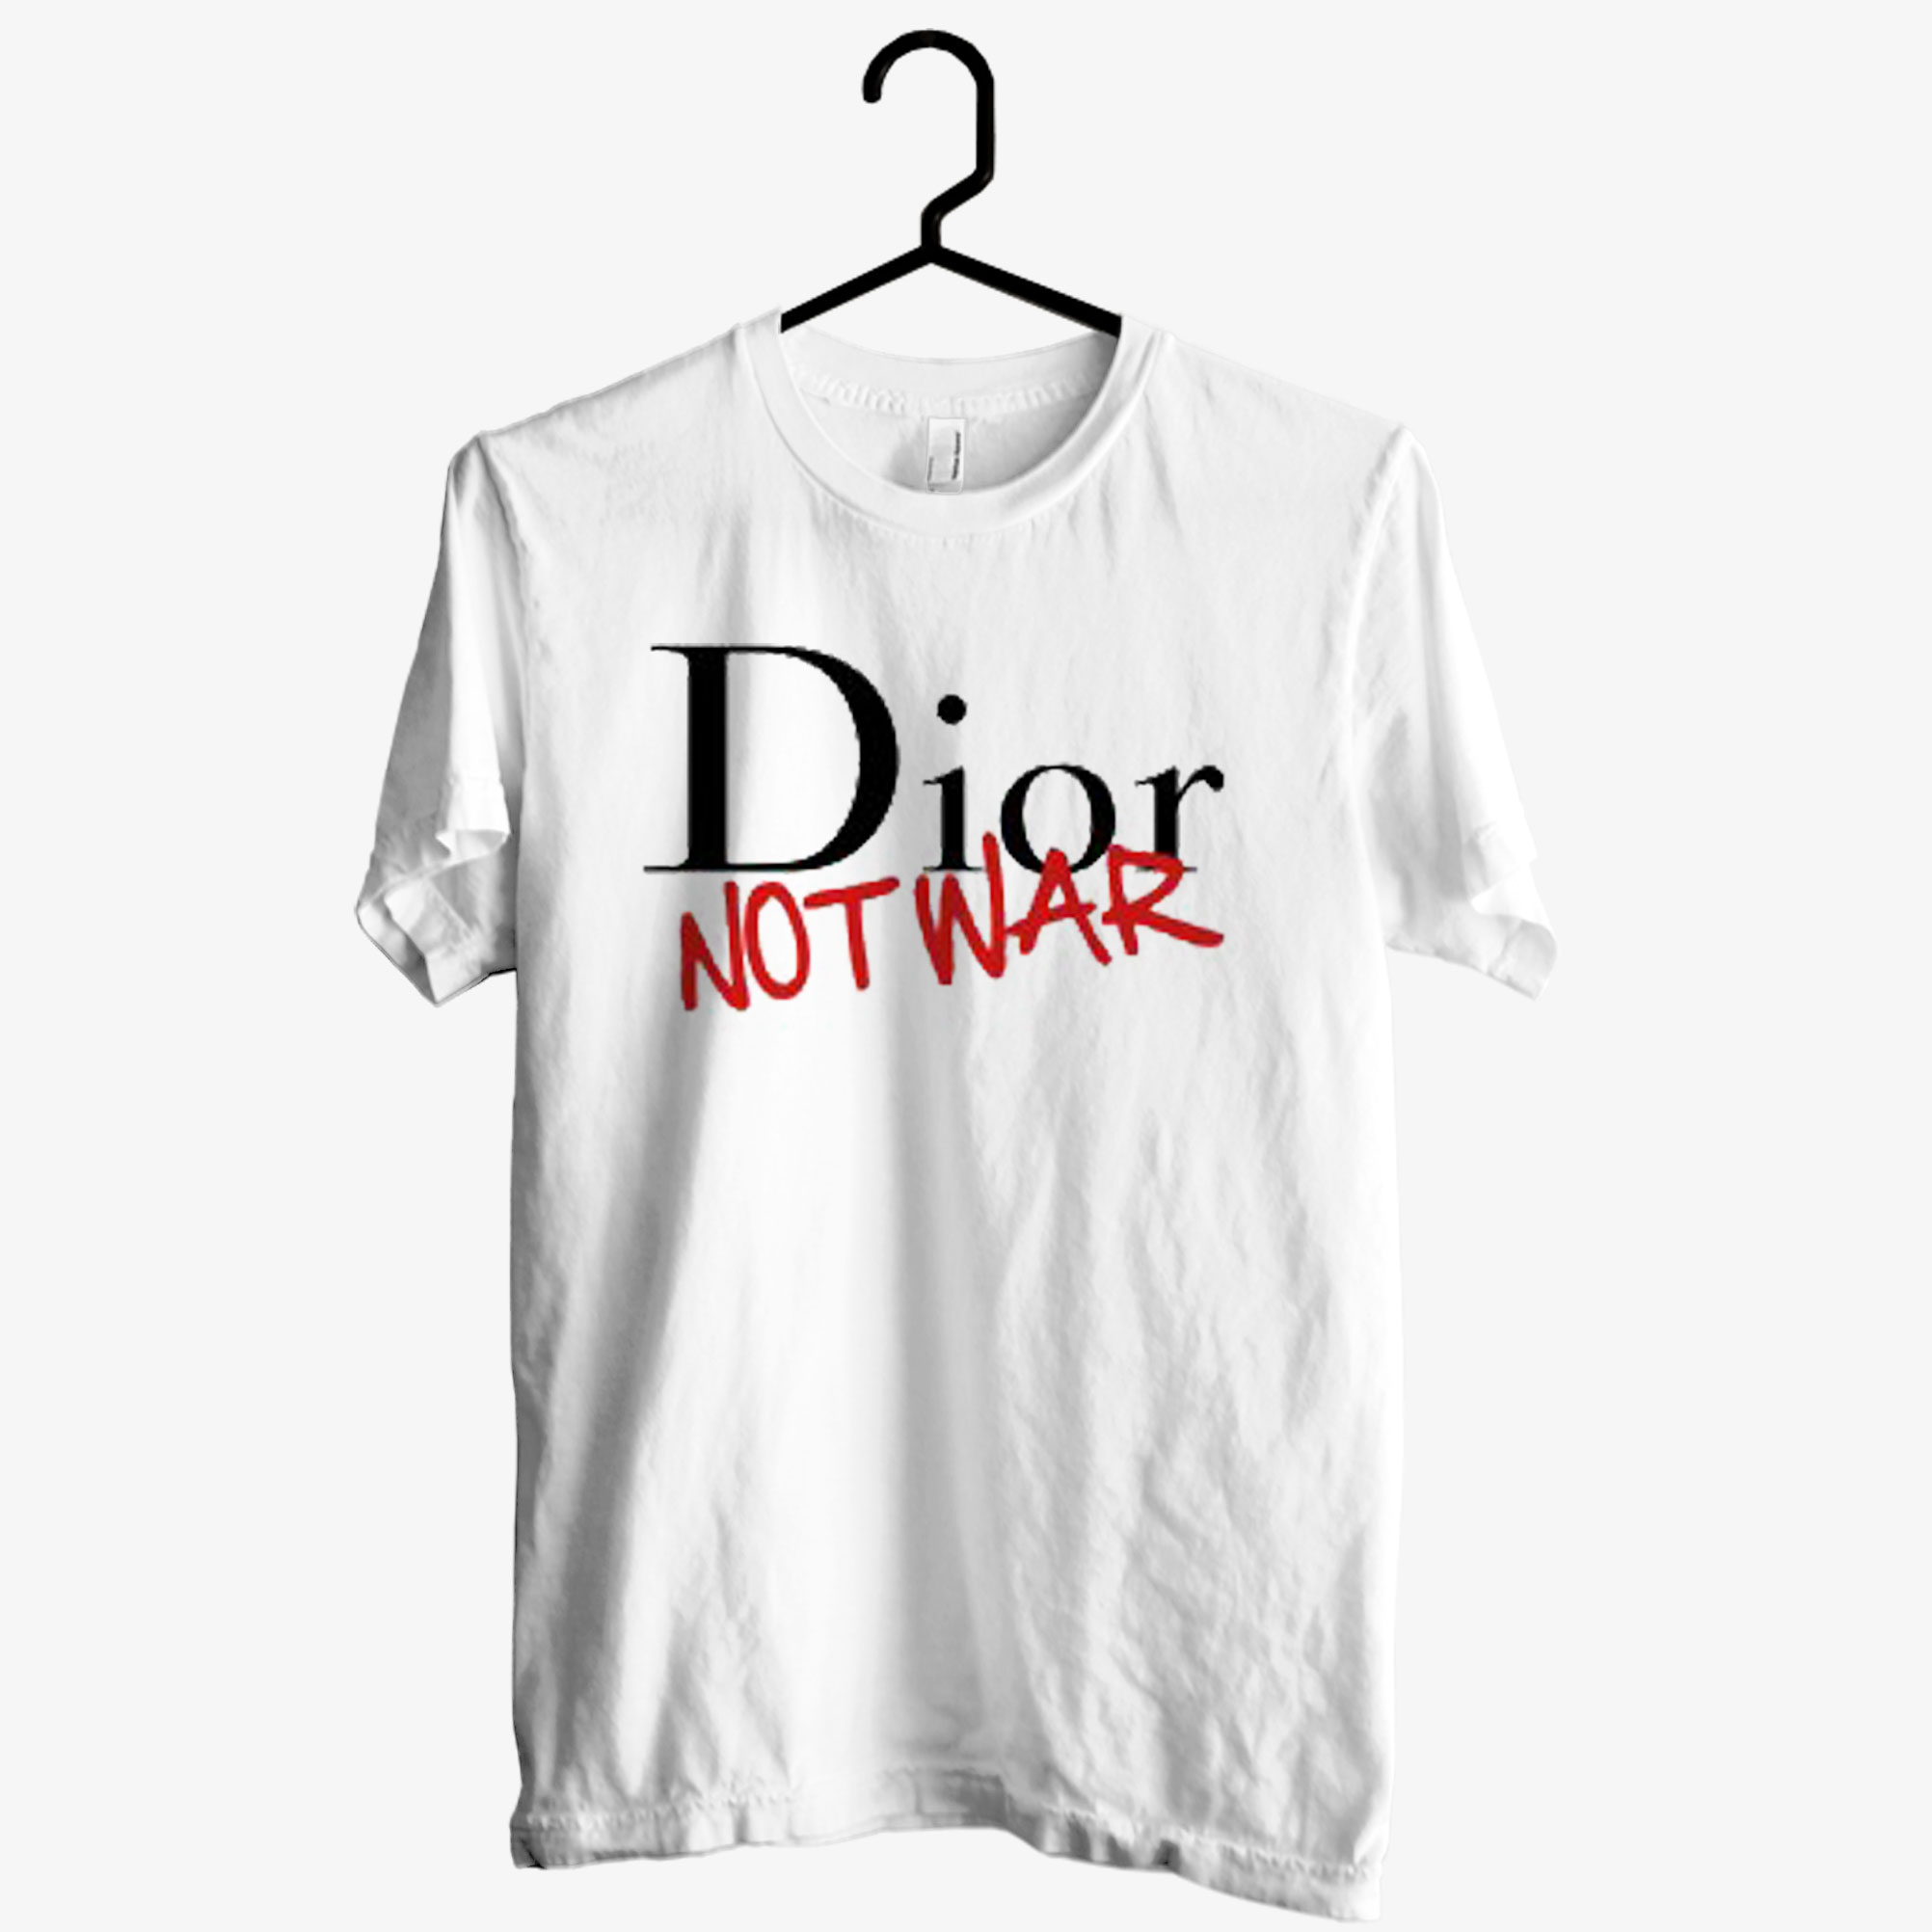 Dior Not War Unisex T shirt